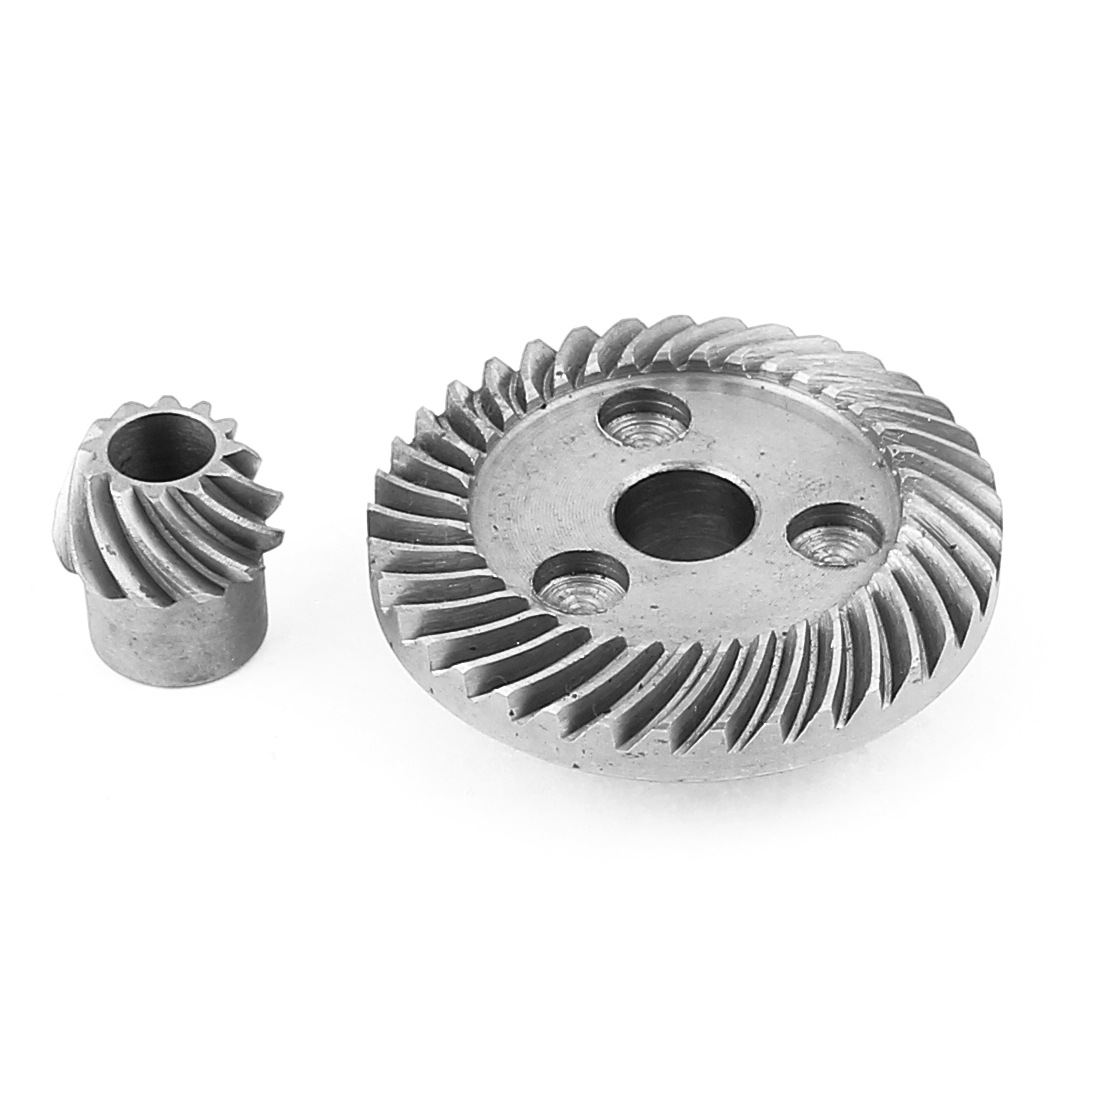 Replacement Metal Spiral Bevel Gear Set for Hitachi 6228 Angle Grinder